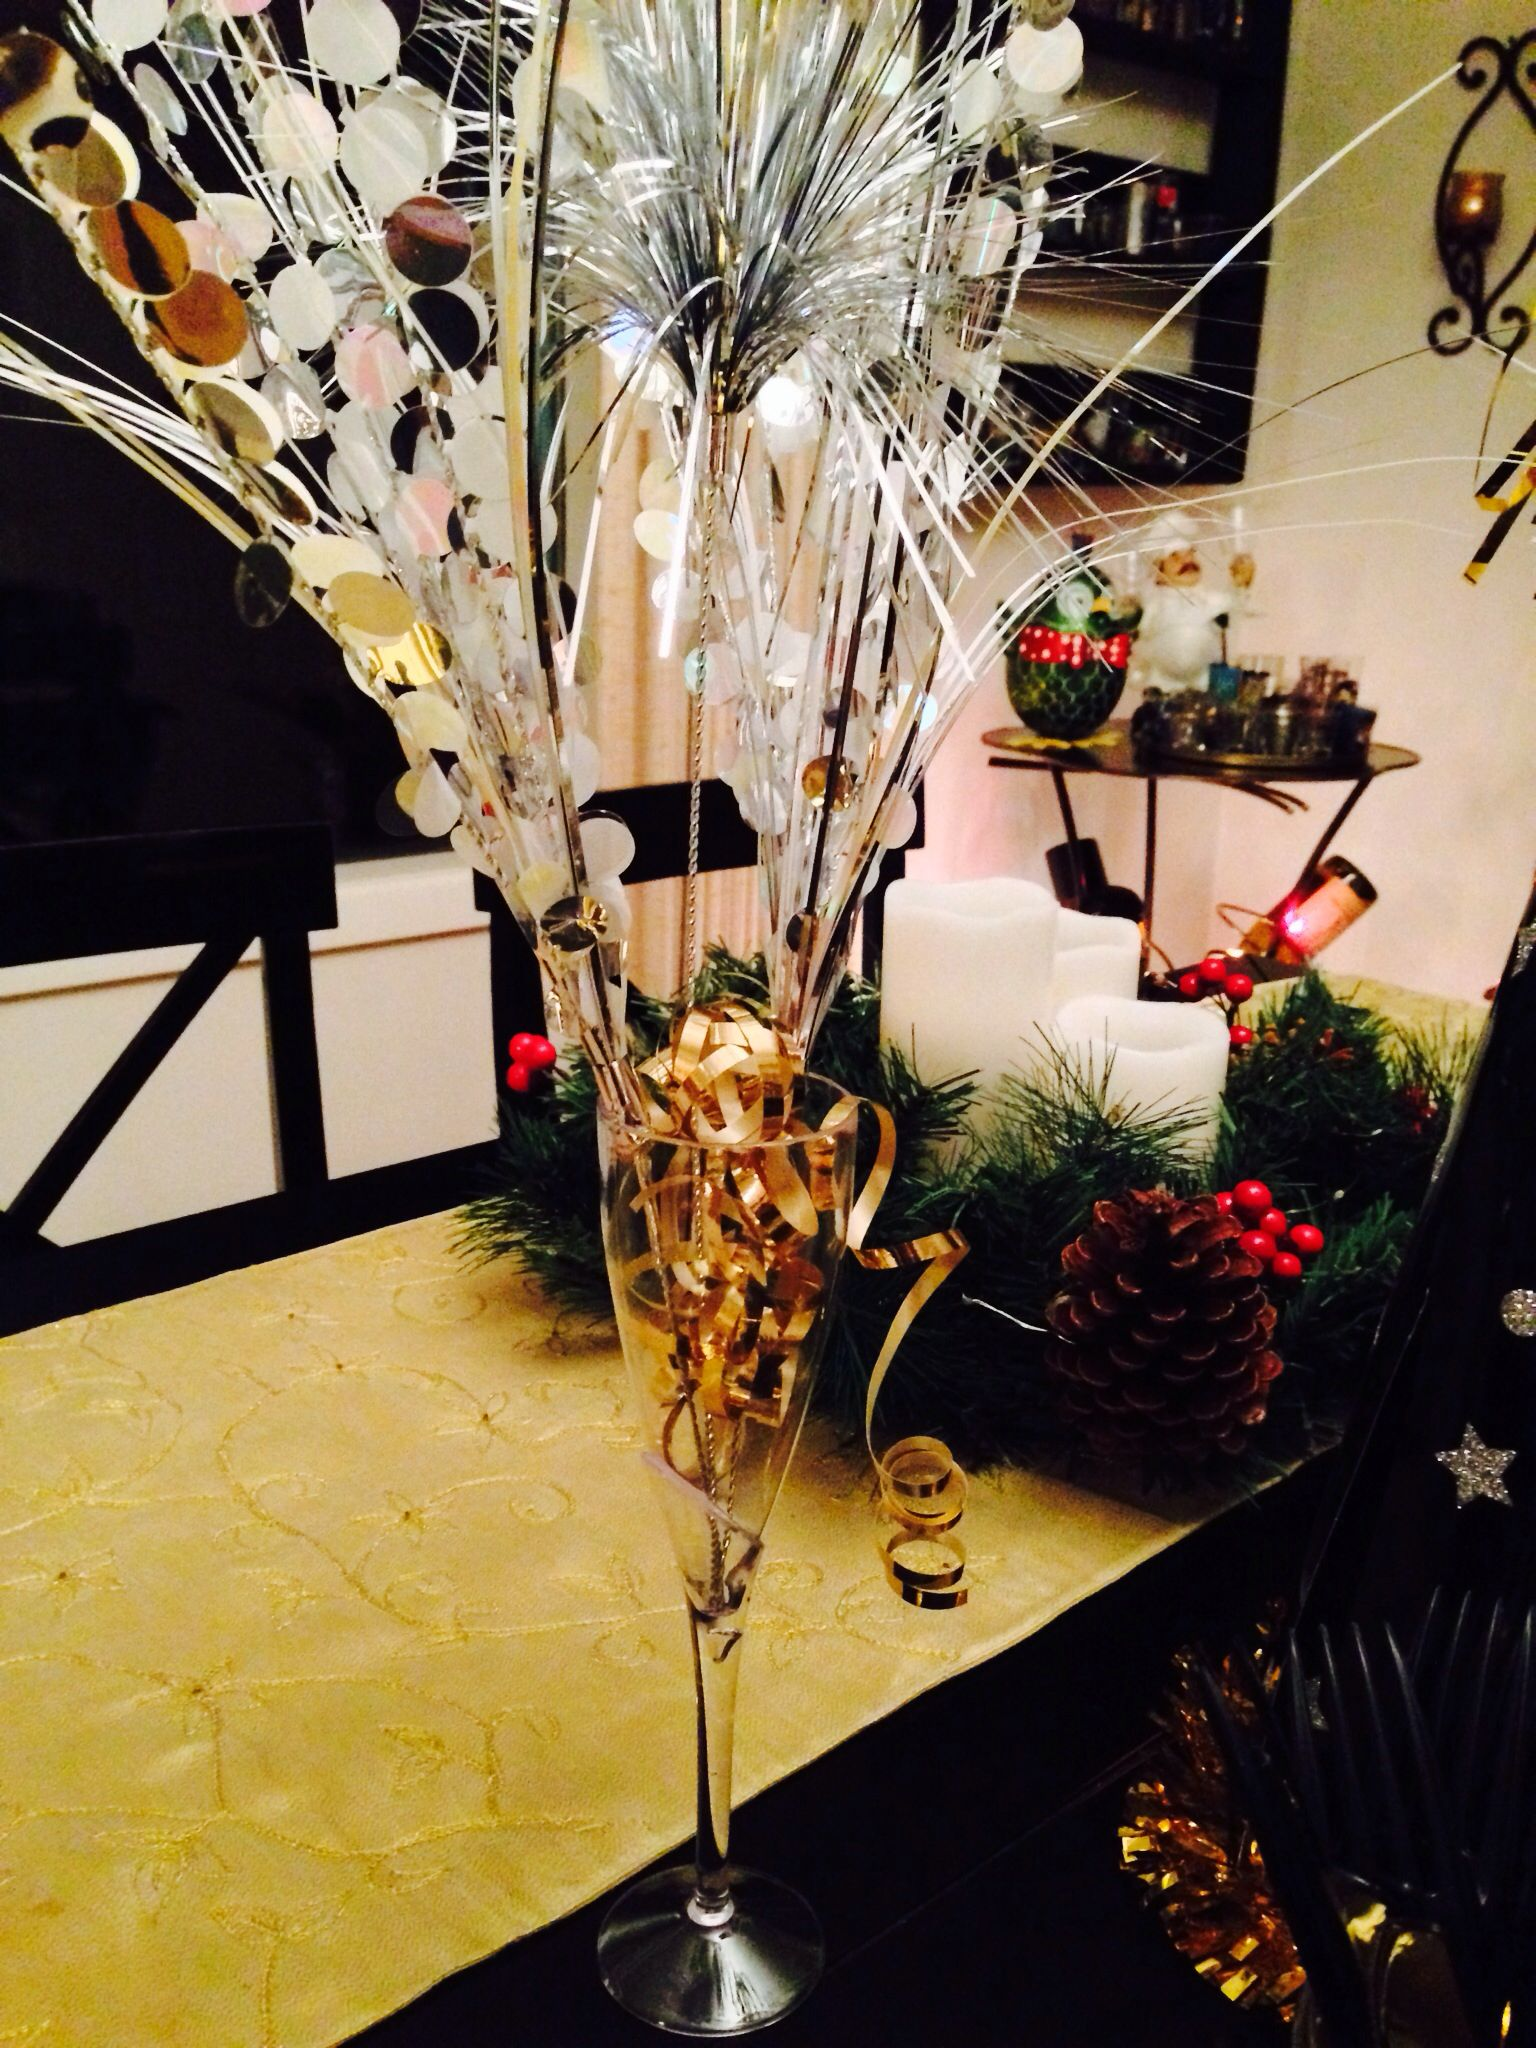 75 off christmas decor from fred meyer gold ribbon and a 050 champagne flute - Fred Meyer Christmas Eve Hours